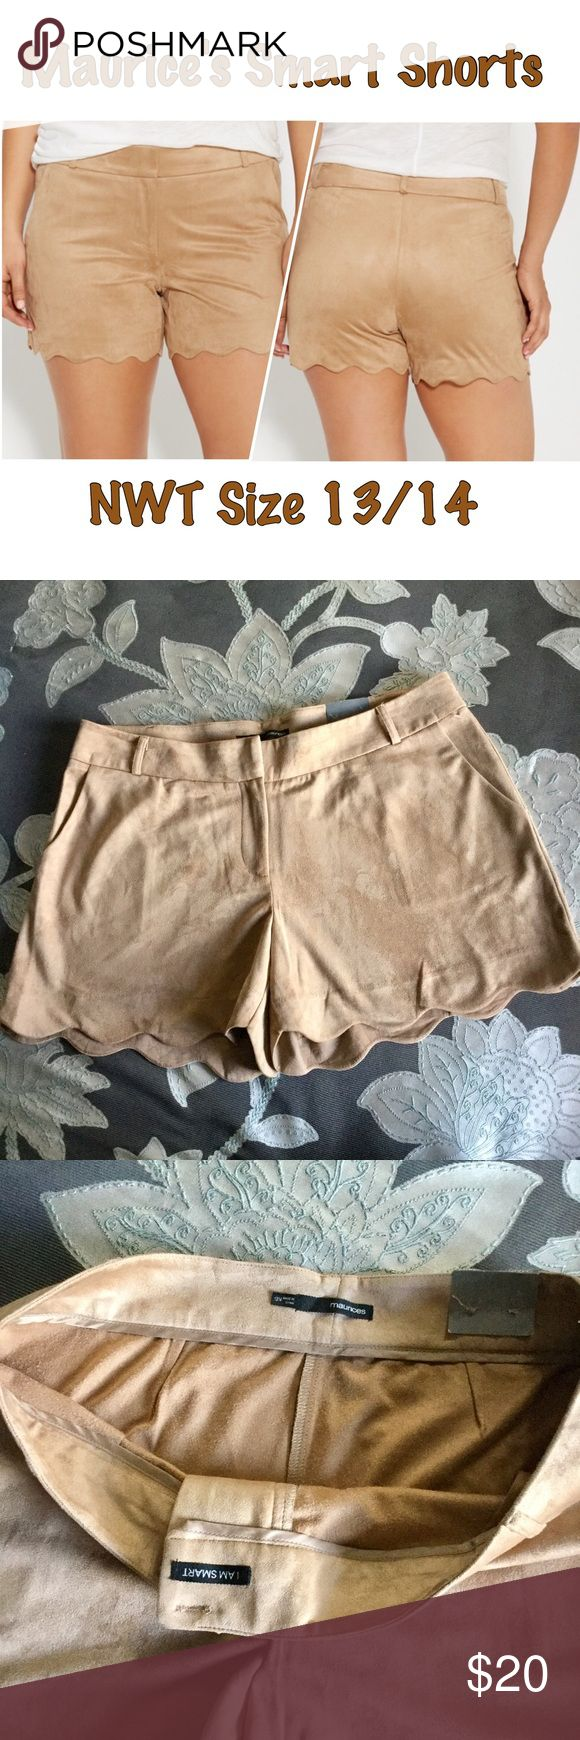 """Maurice's Smart Shorts Size 13/14 NWT Maurice's Smart Shorts in caramel color, velvety feel, scalloped hem. Approx laying flat waist measures 18"""" Maurices Shorts"""